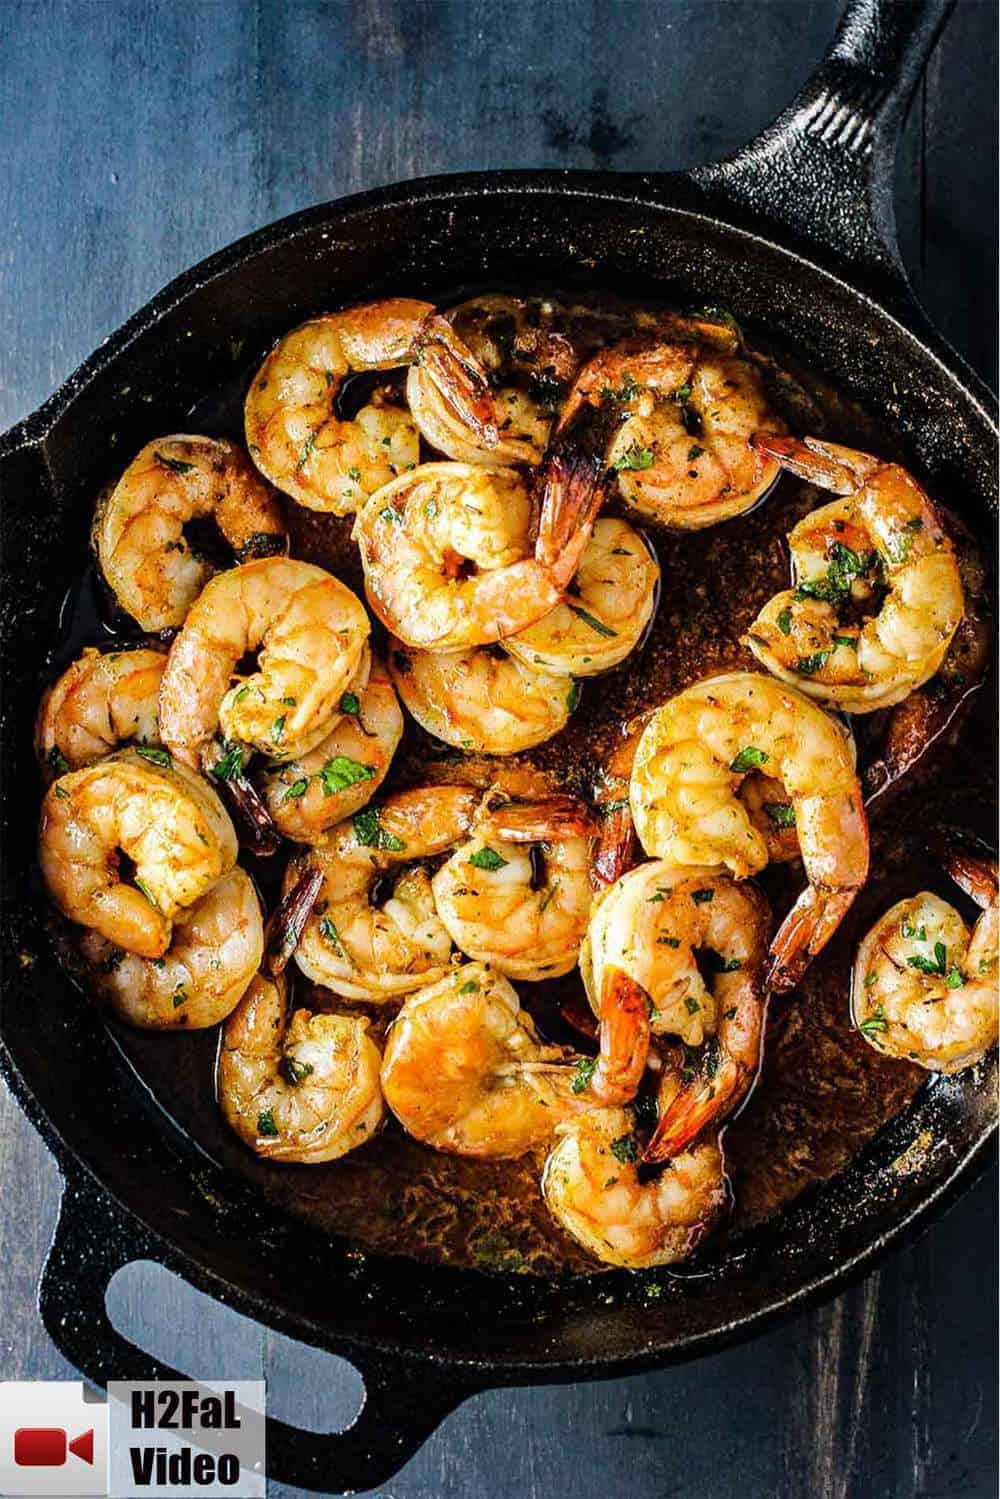 Baked cajun shrimp in a black cast iron skillet.